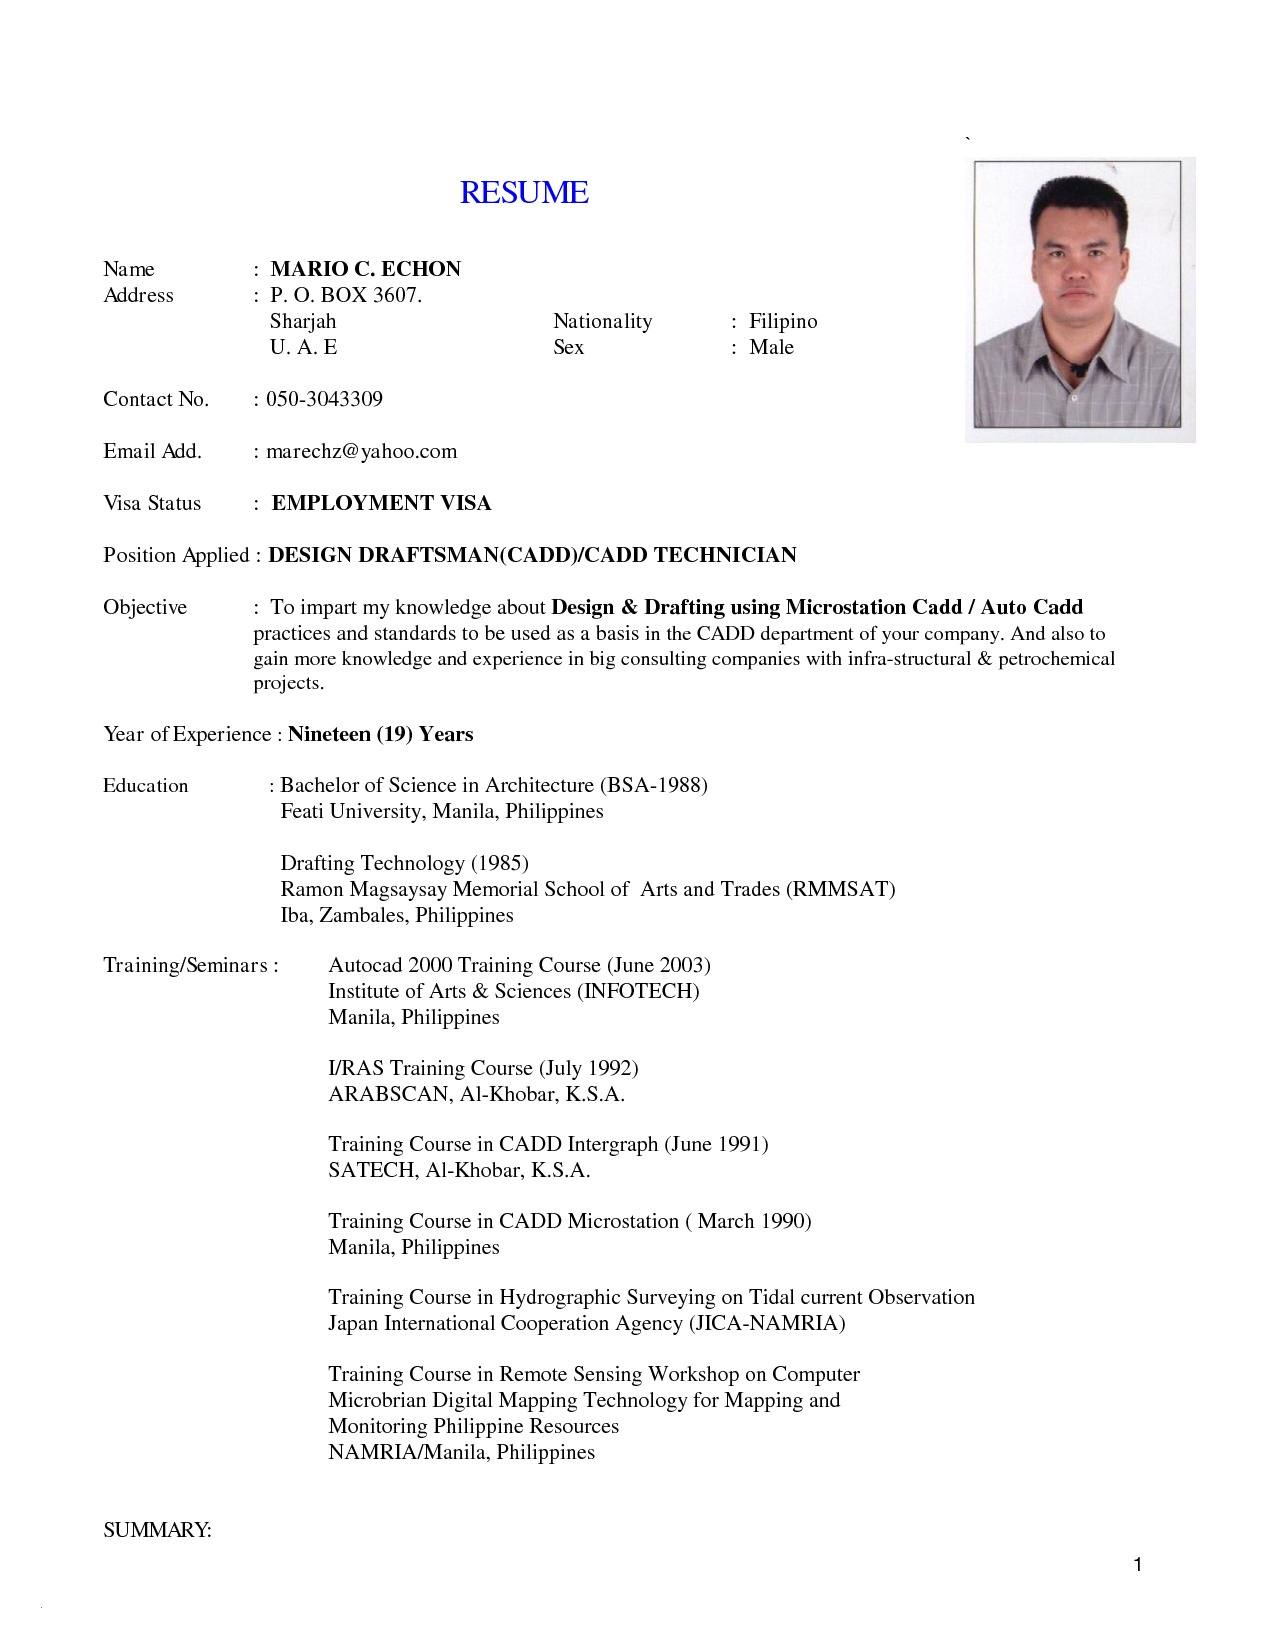 Medical Technologist Resume Template - Download Best Medical Technologist Resume